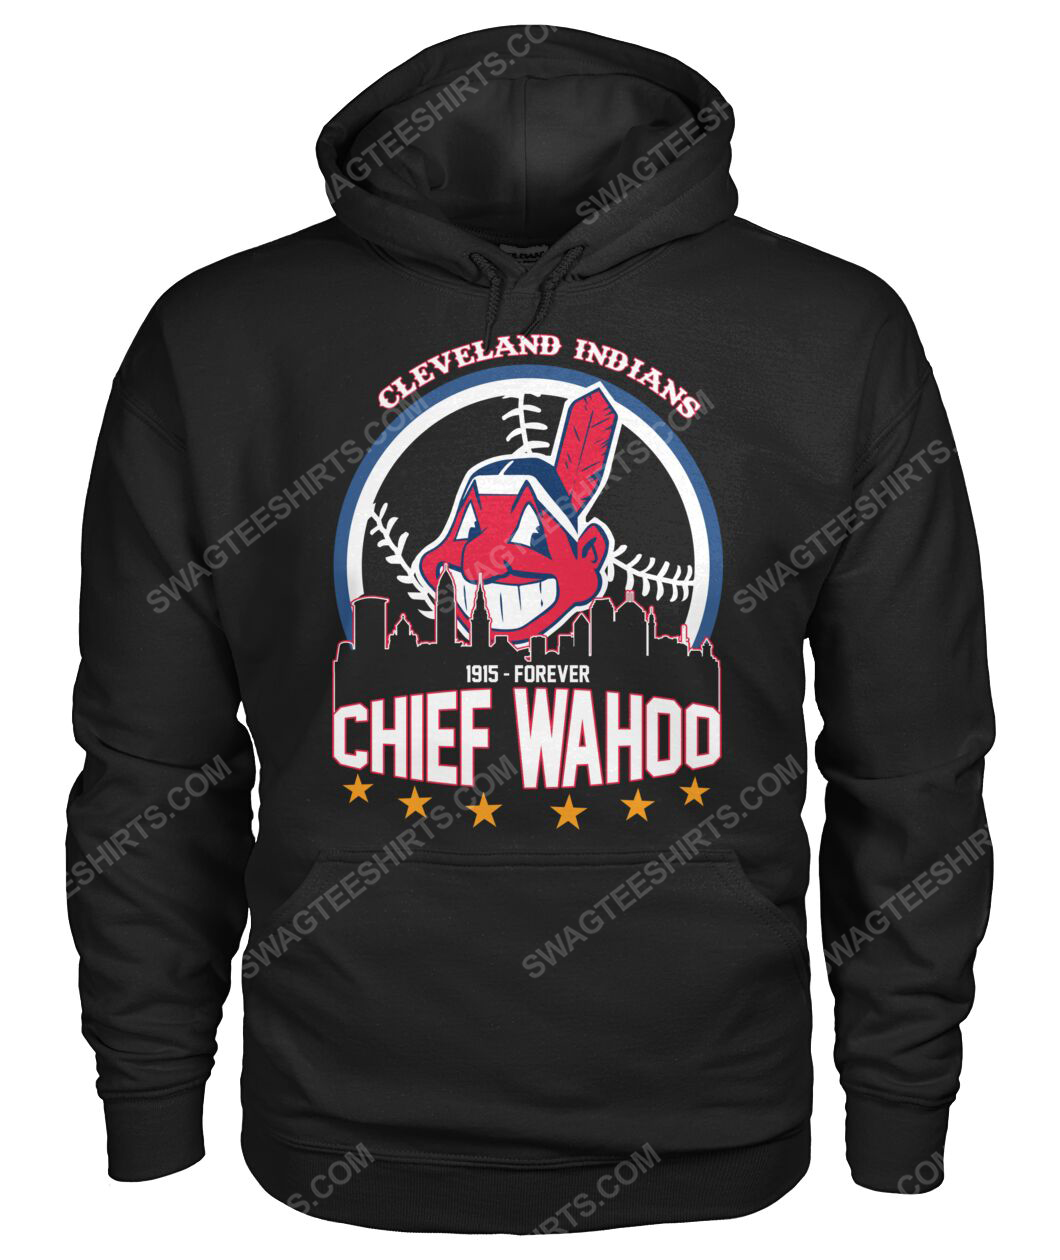 The cleveland indians 1915 forever chief wahoo hoodie 1